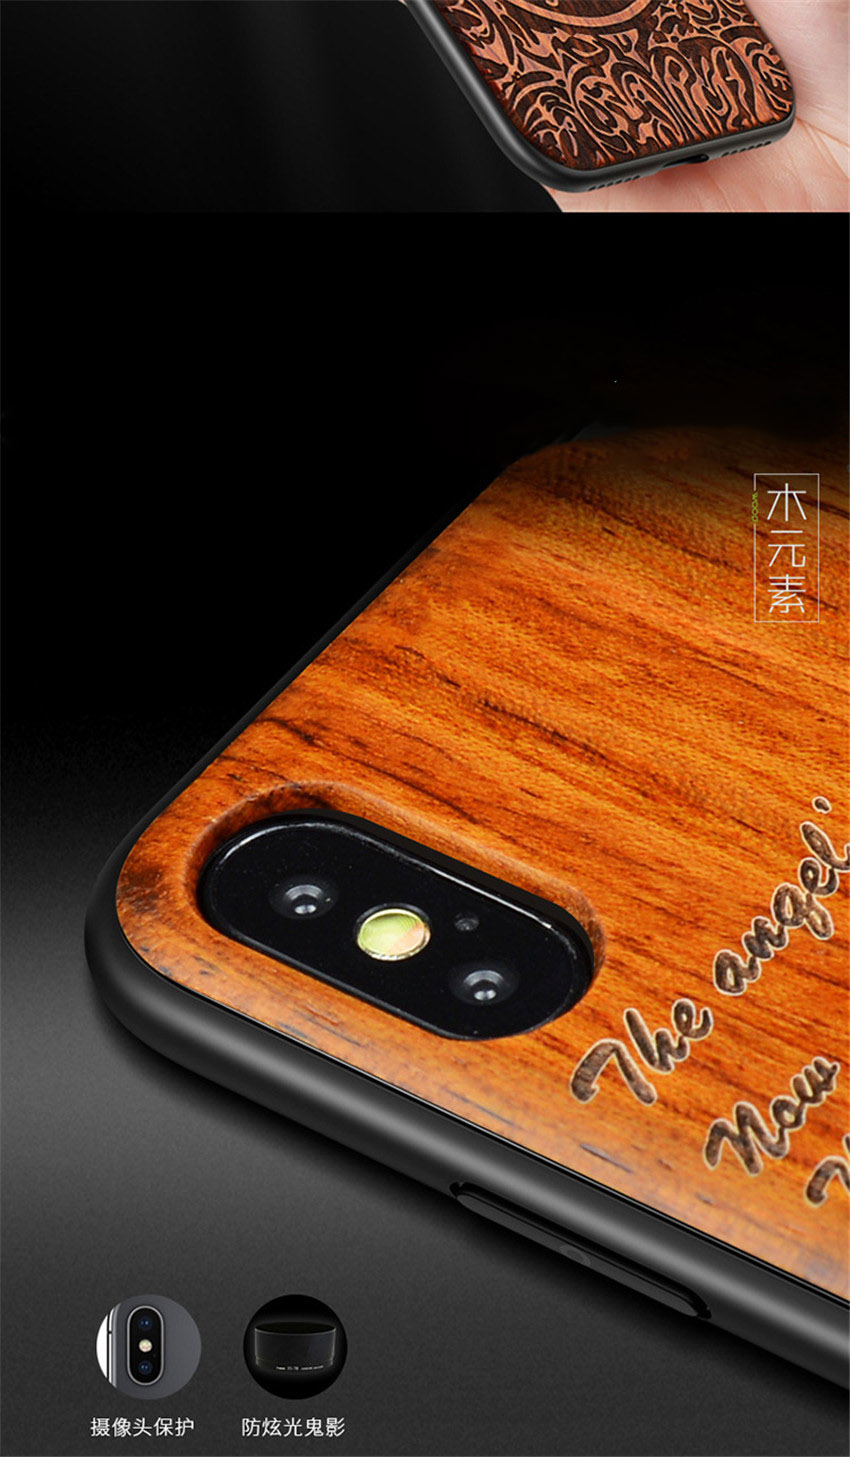 2018 New For iPhone XS Max Case Slim Wood Back Cover TPU Bumper Case For iPhone X iPhone XS Phone Cases (7)